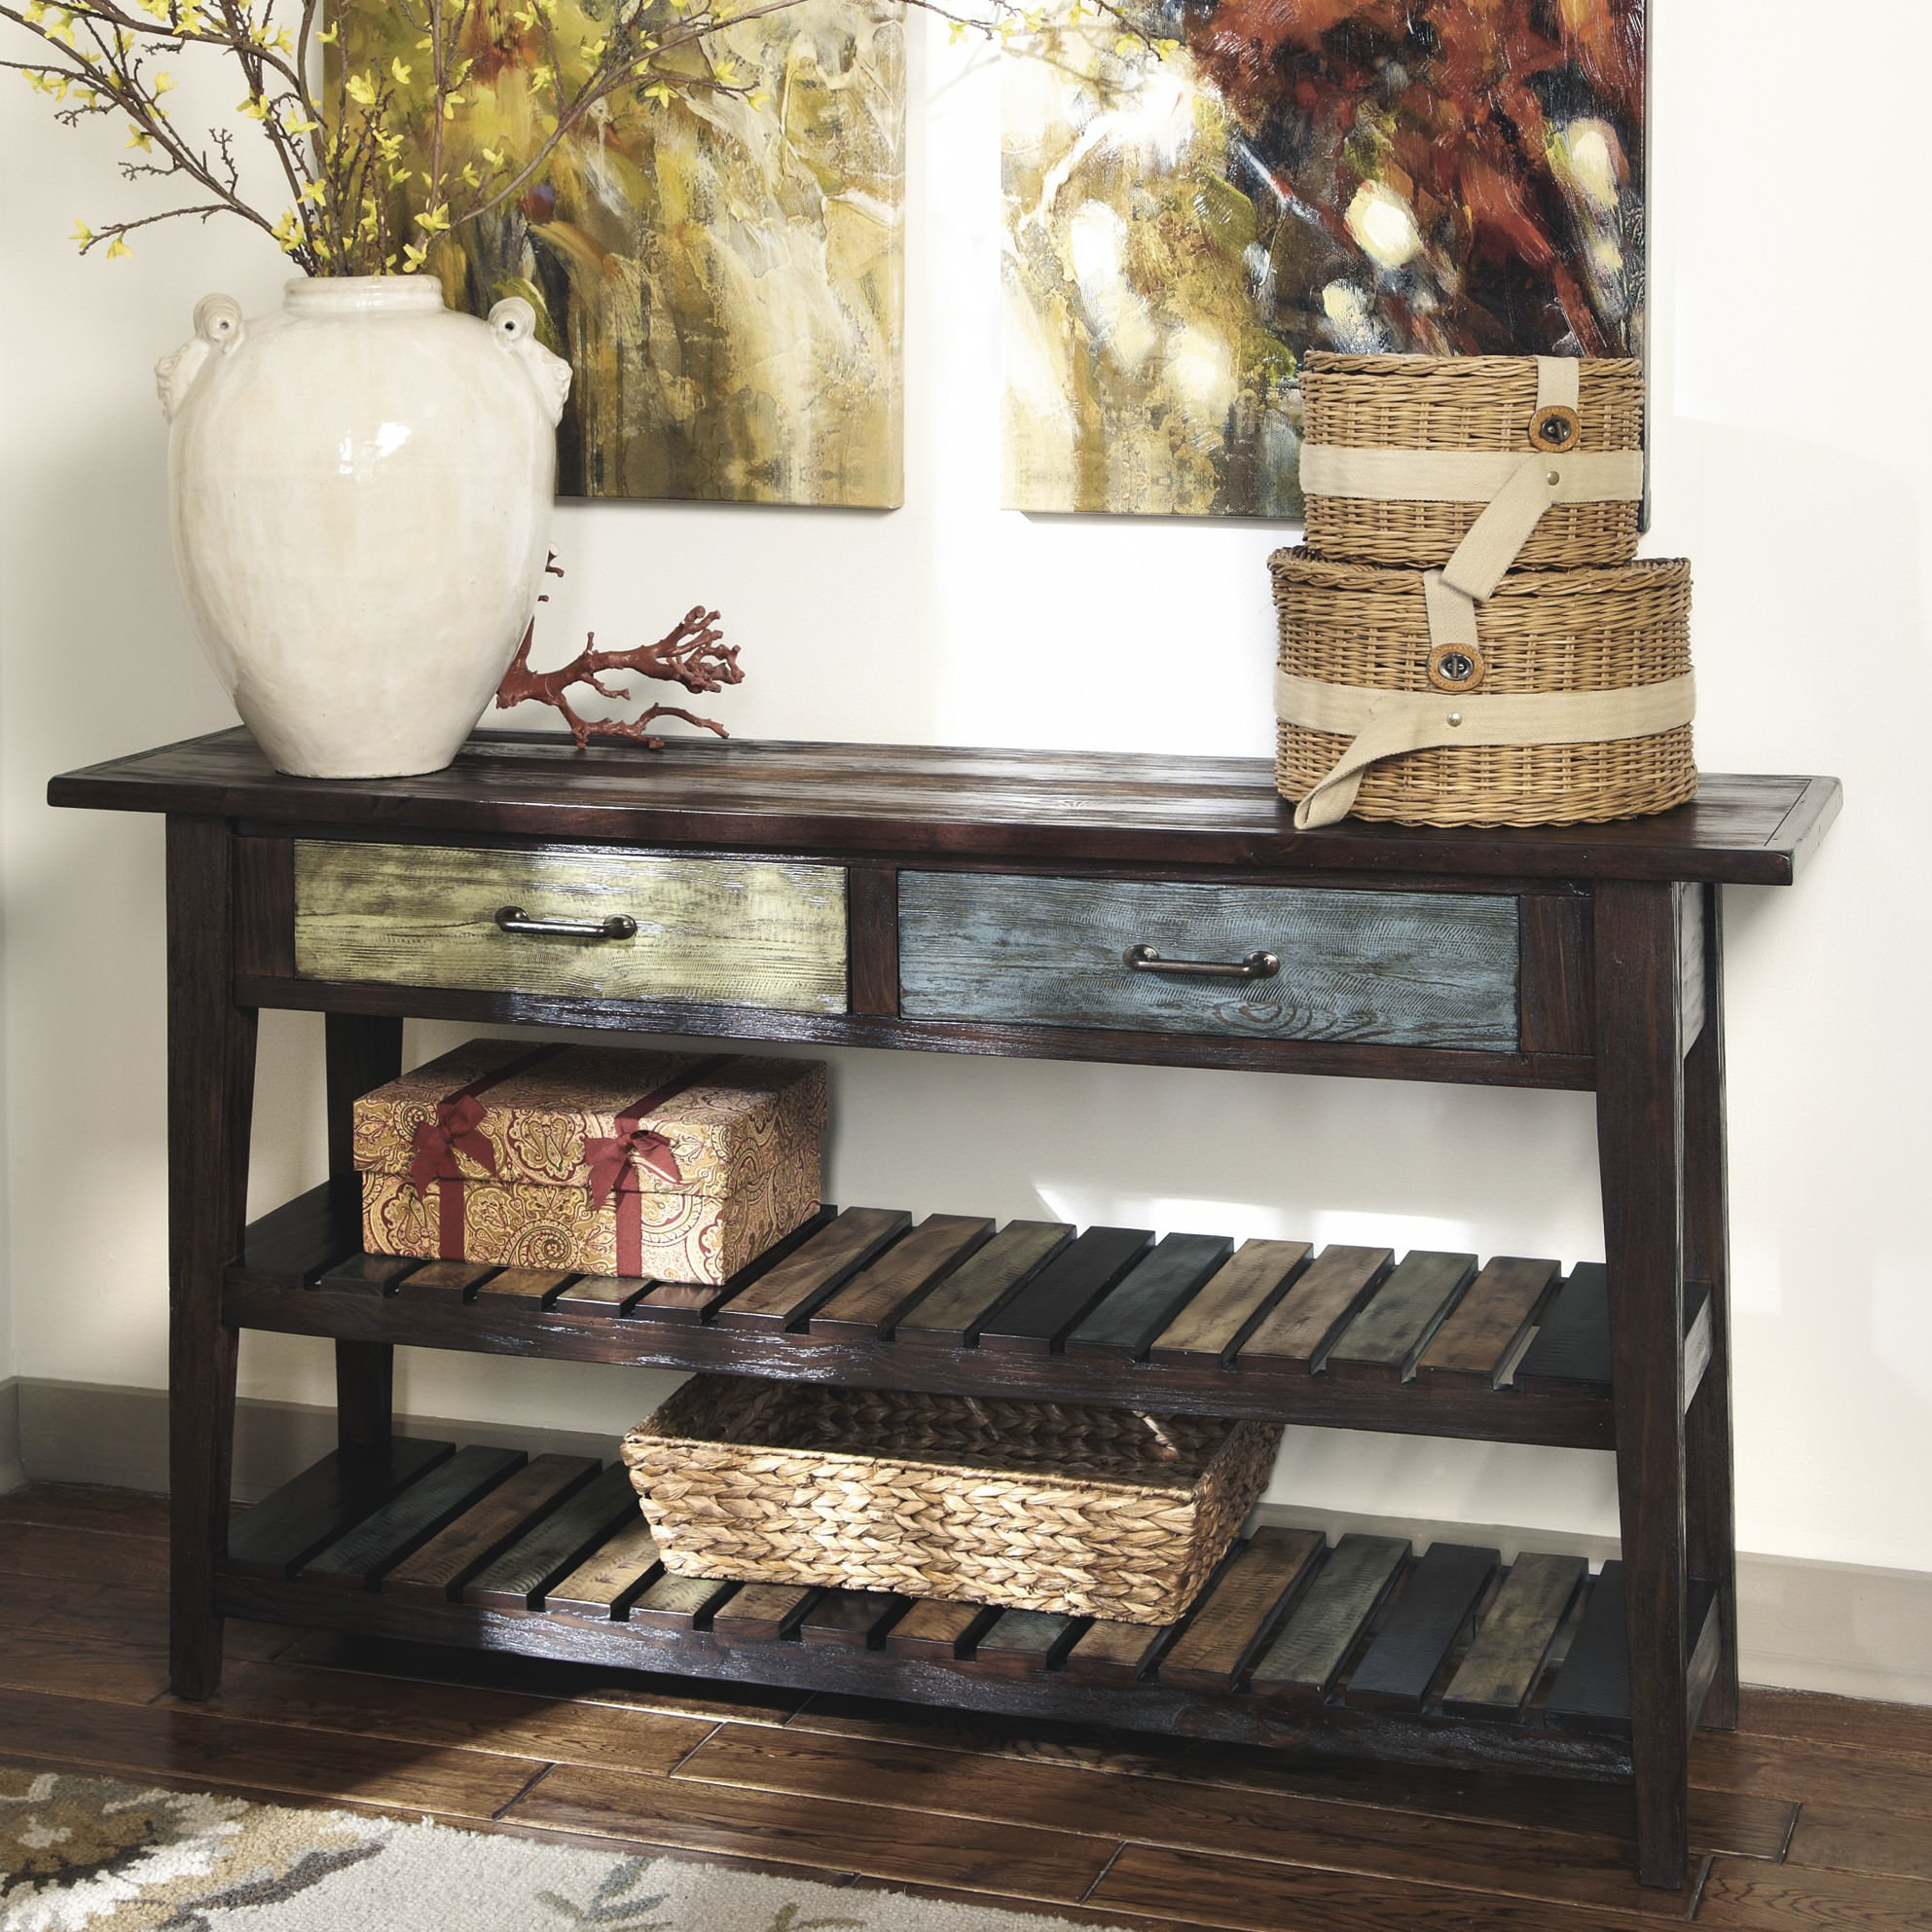 Foyer table with shelves